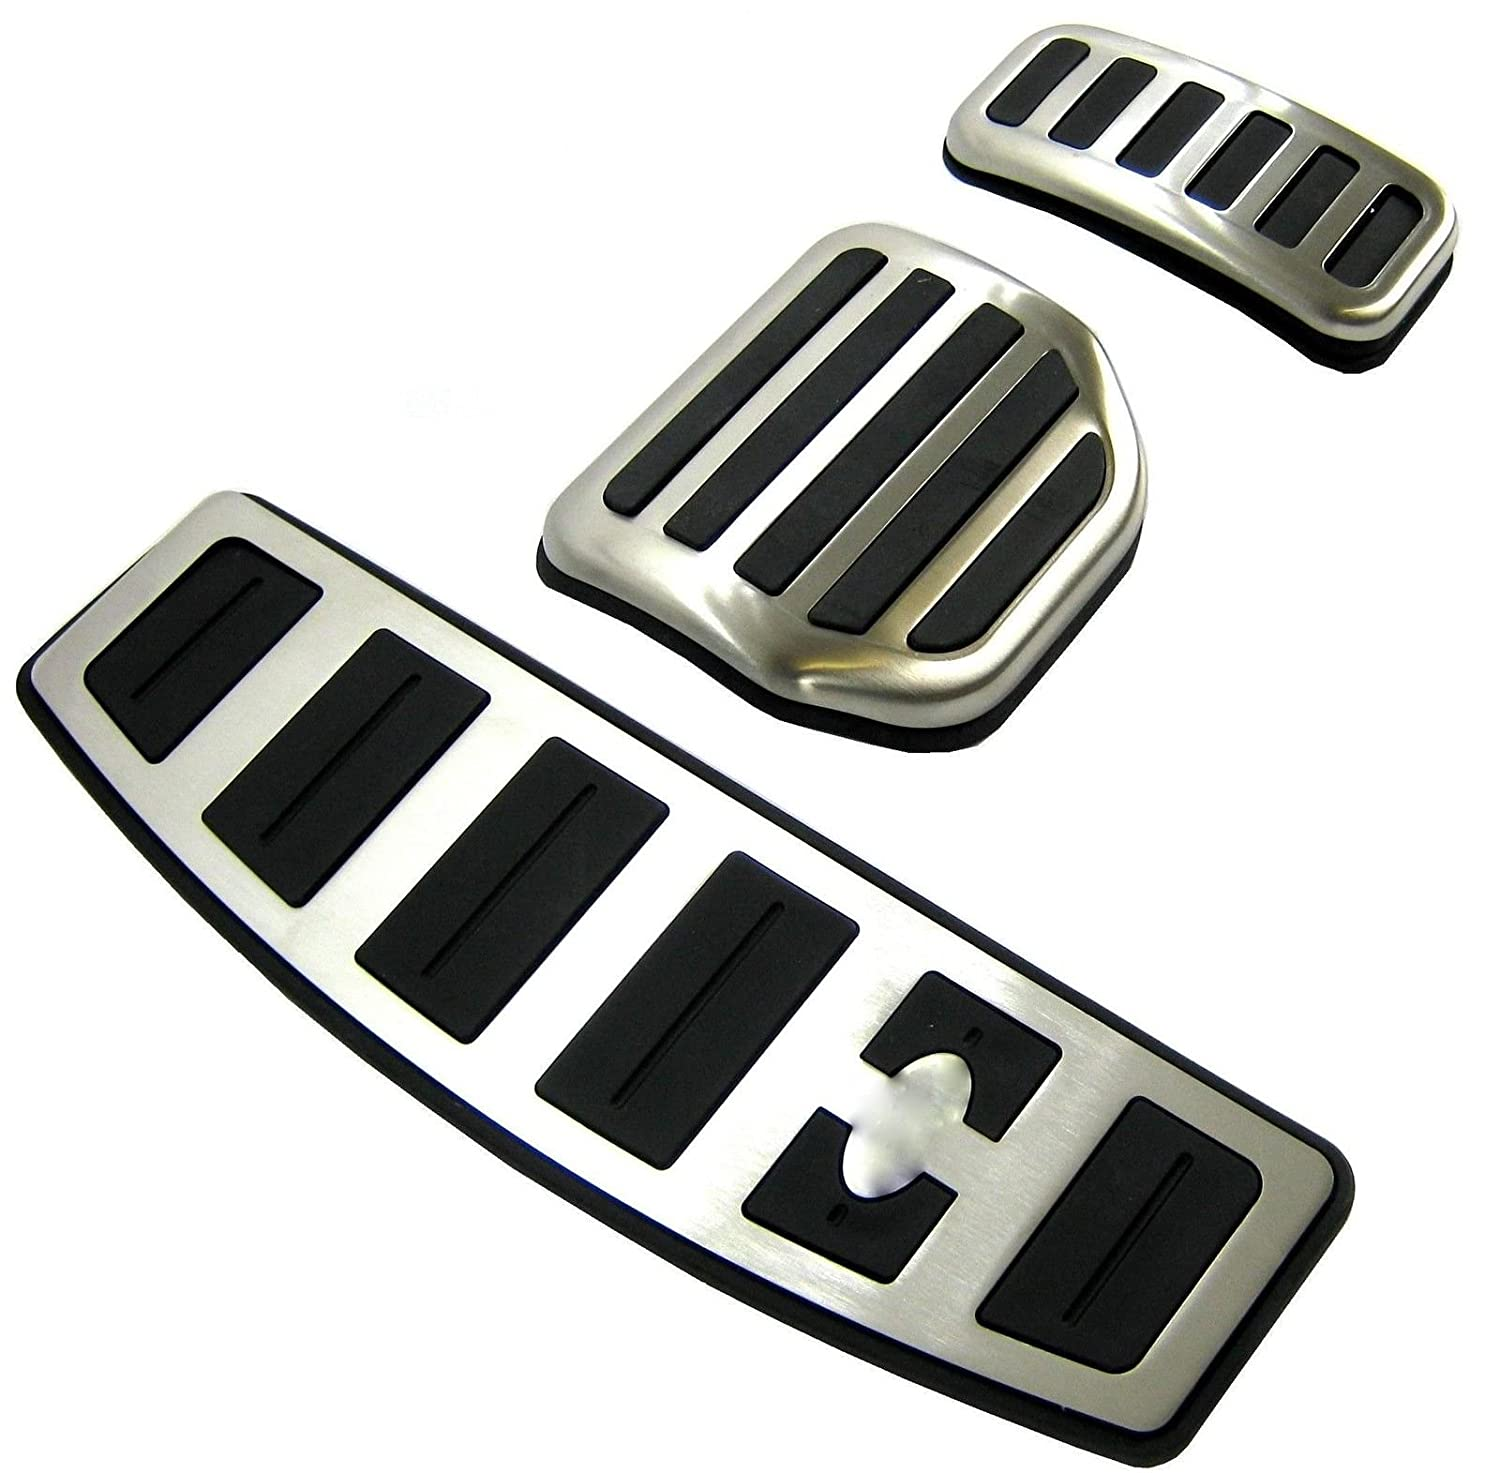 No Drill Gas Brake Pedal Stainless Steel Anti-slip Accelerator Brake Pedal Cover Fits Discovery 3+4 A alloy brake covers (AT)